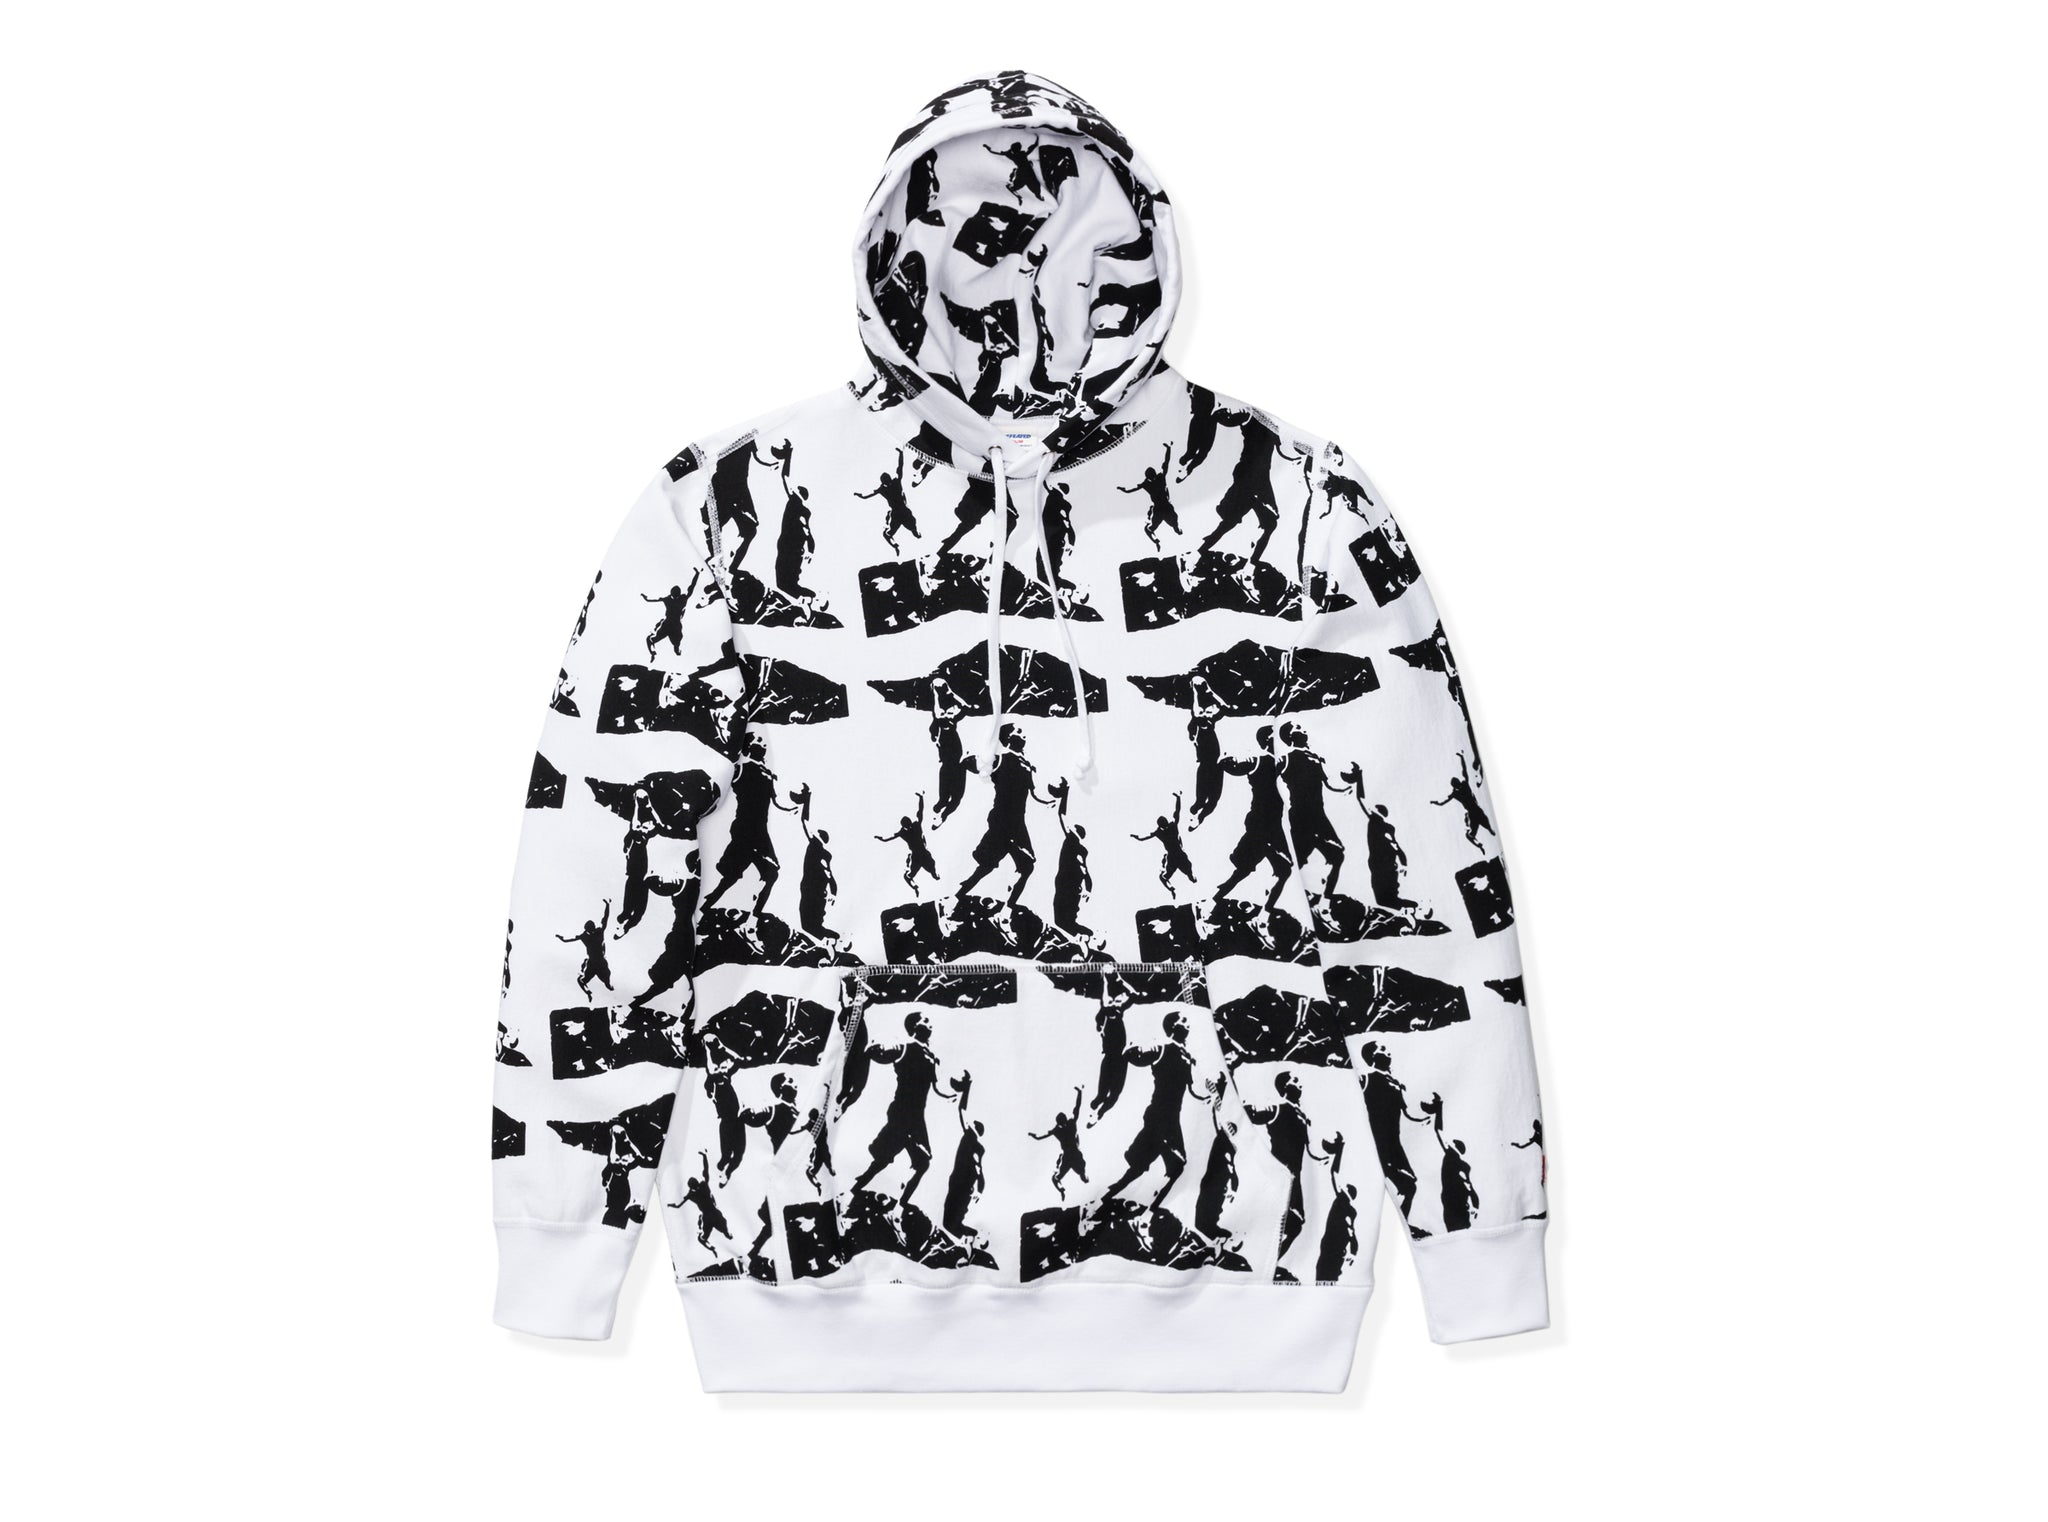 UNDEFEATED PRINTED PULLOVER HOODIE - WHITE